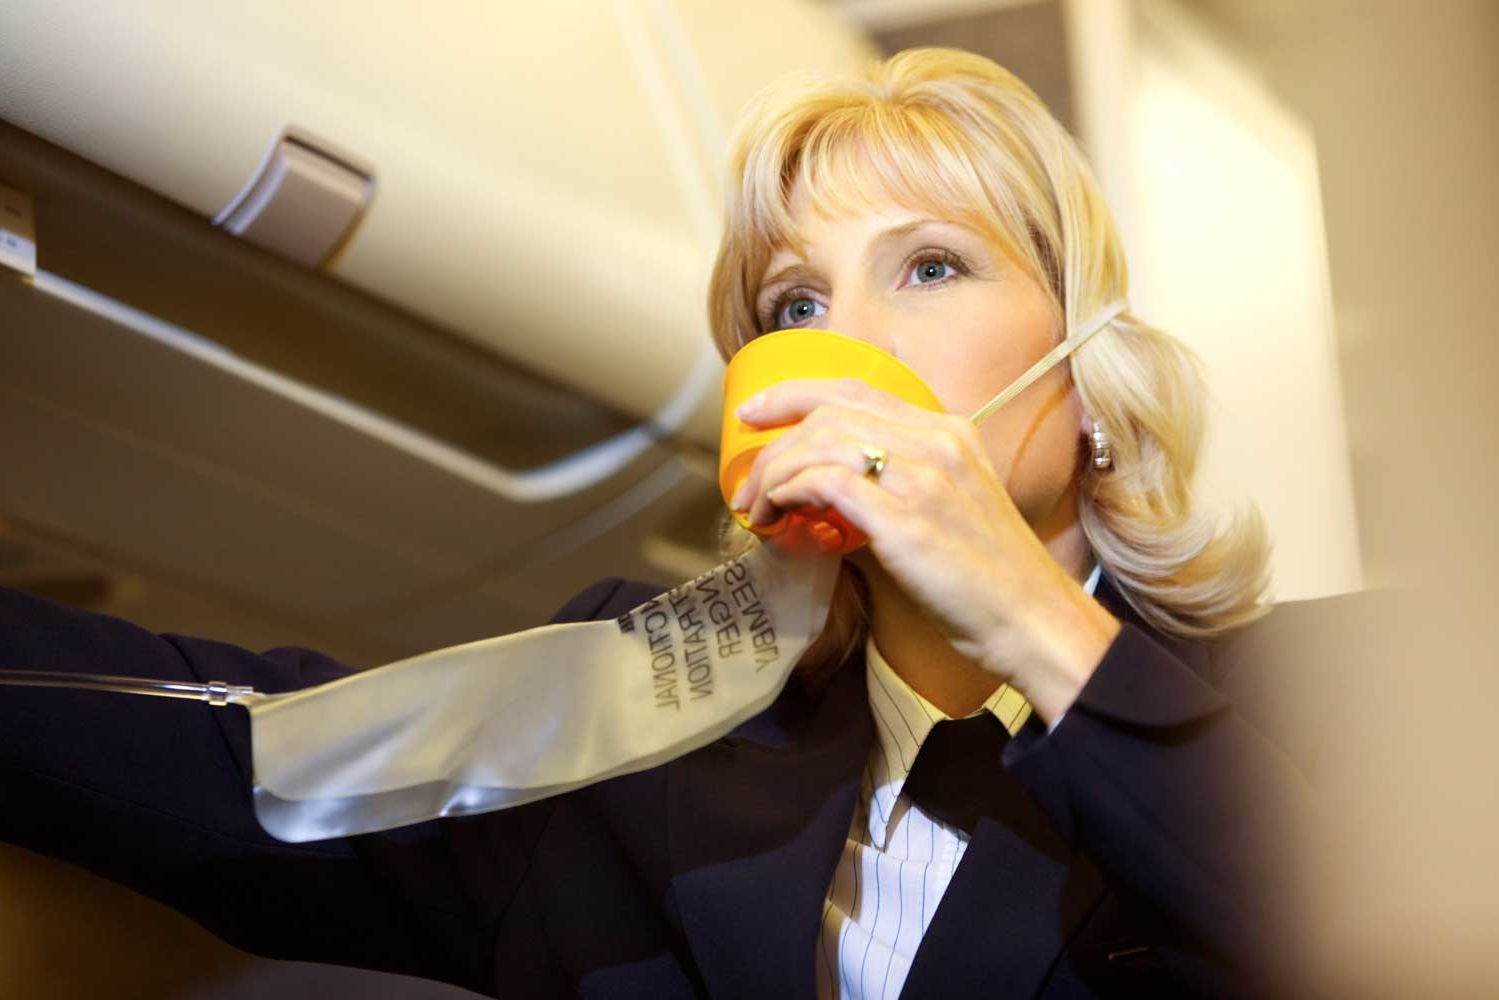 This Is How You Should Use Your Airplane Oxygen Mask